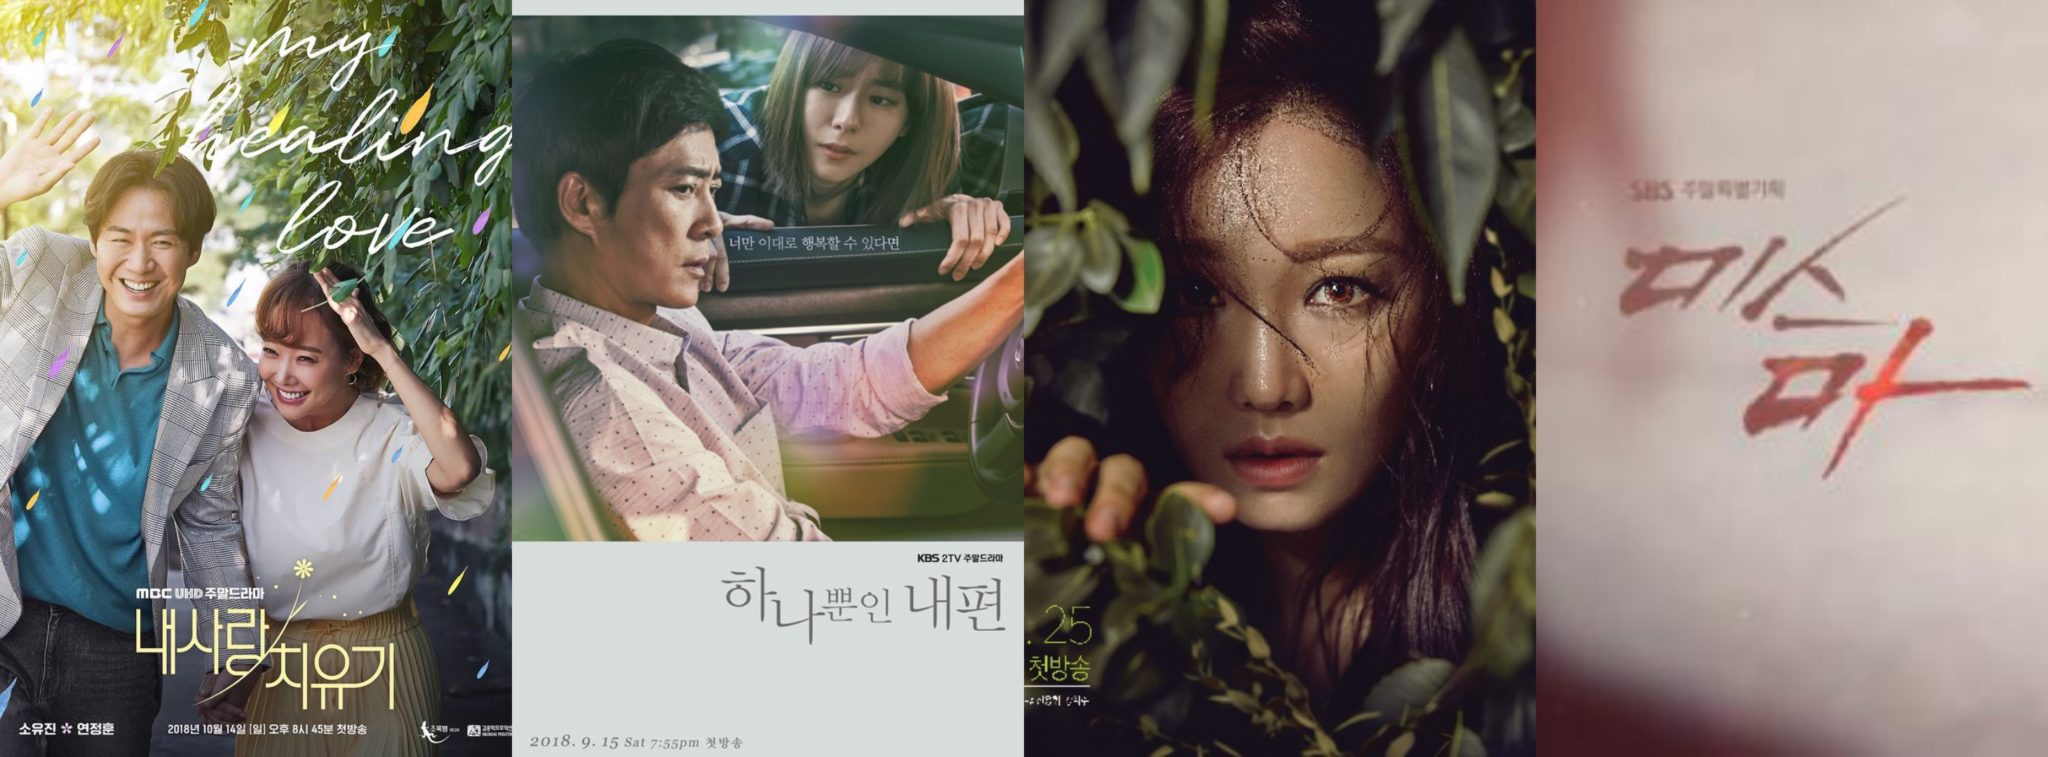 Where to Watch On Air Korean Dramas: October 15 - 21, 2018